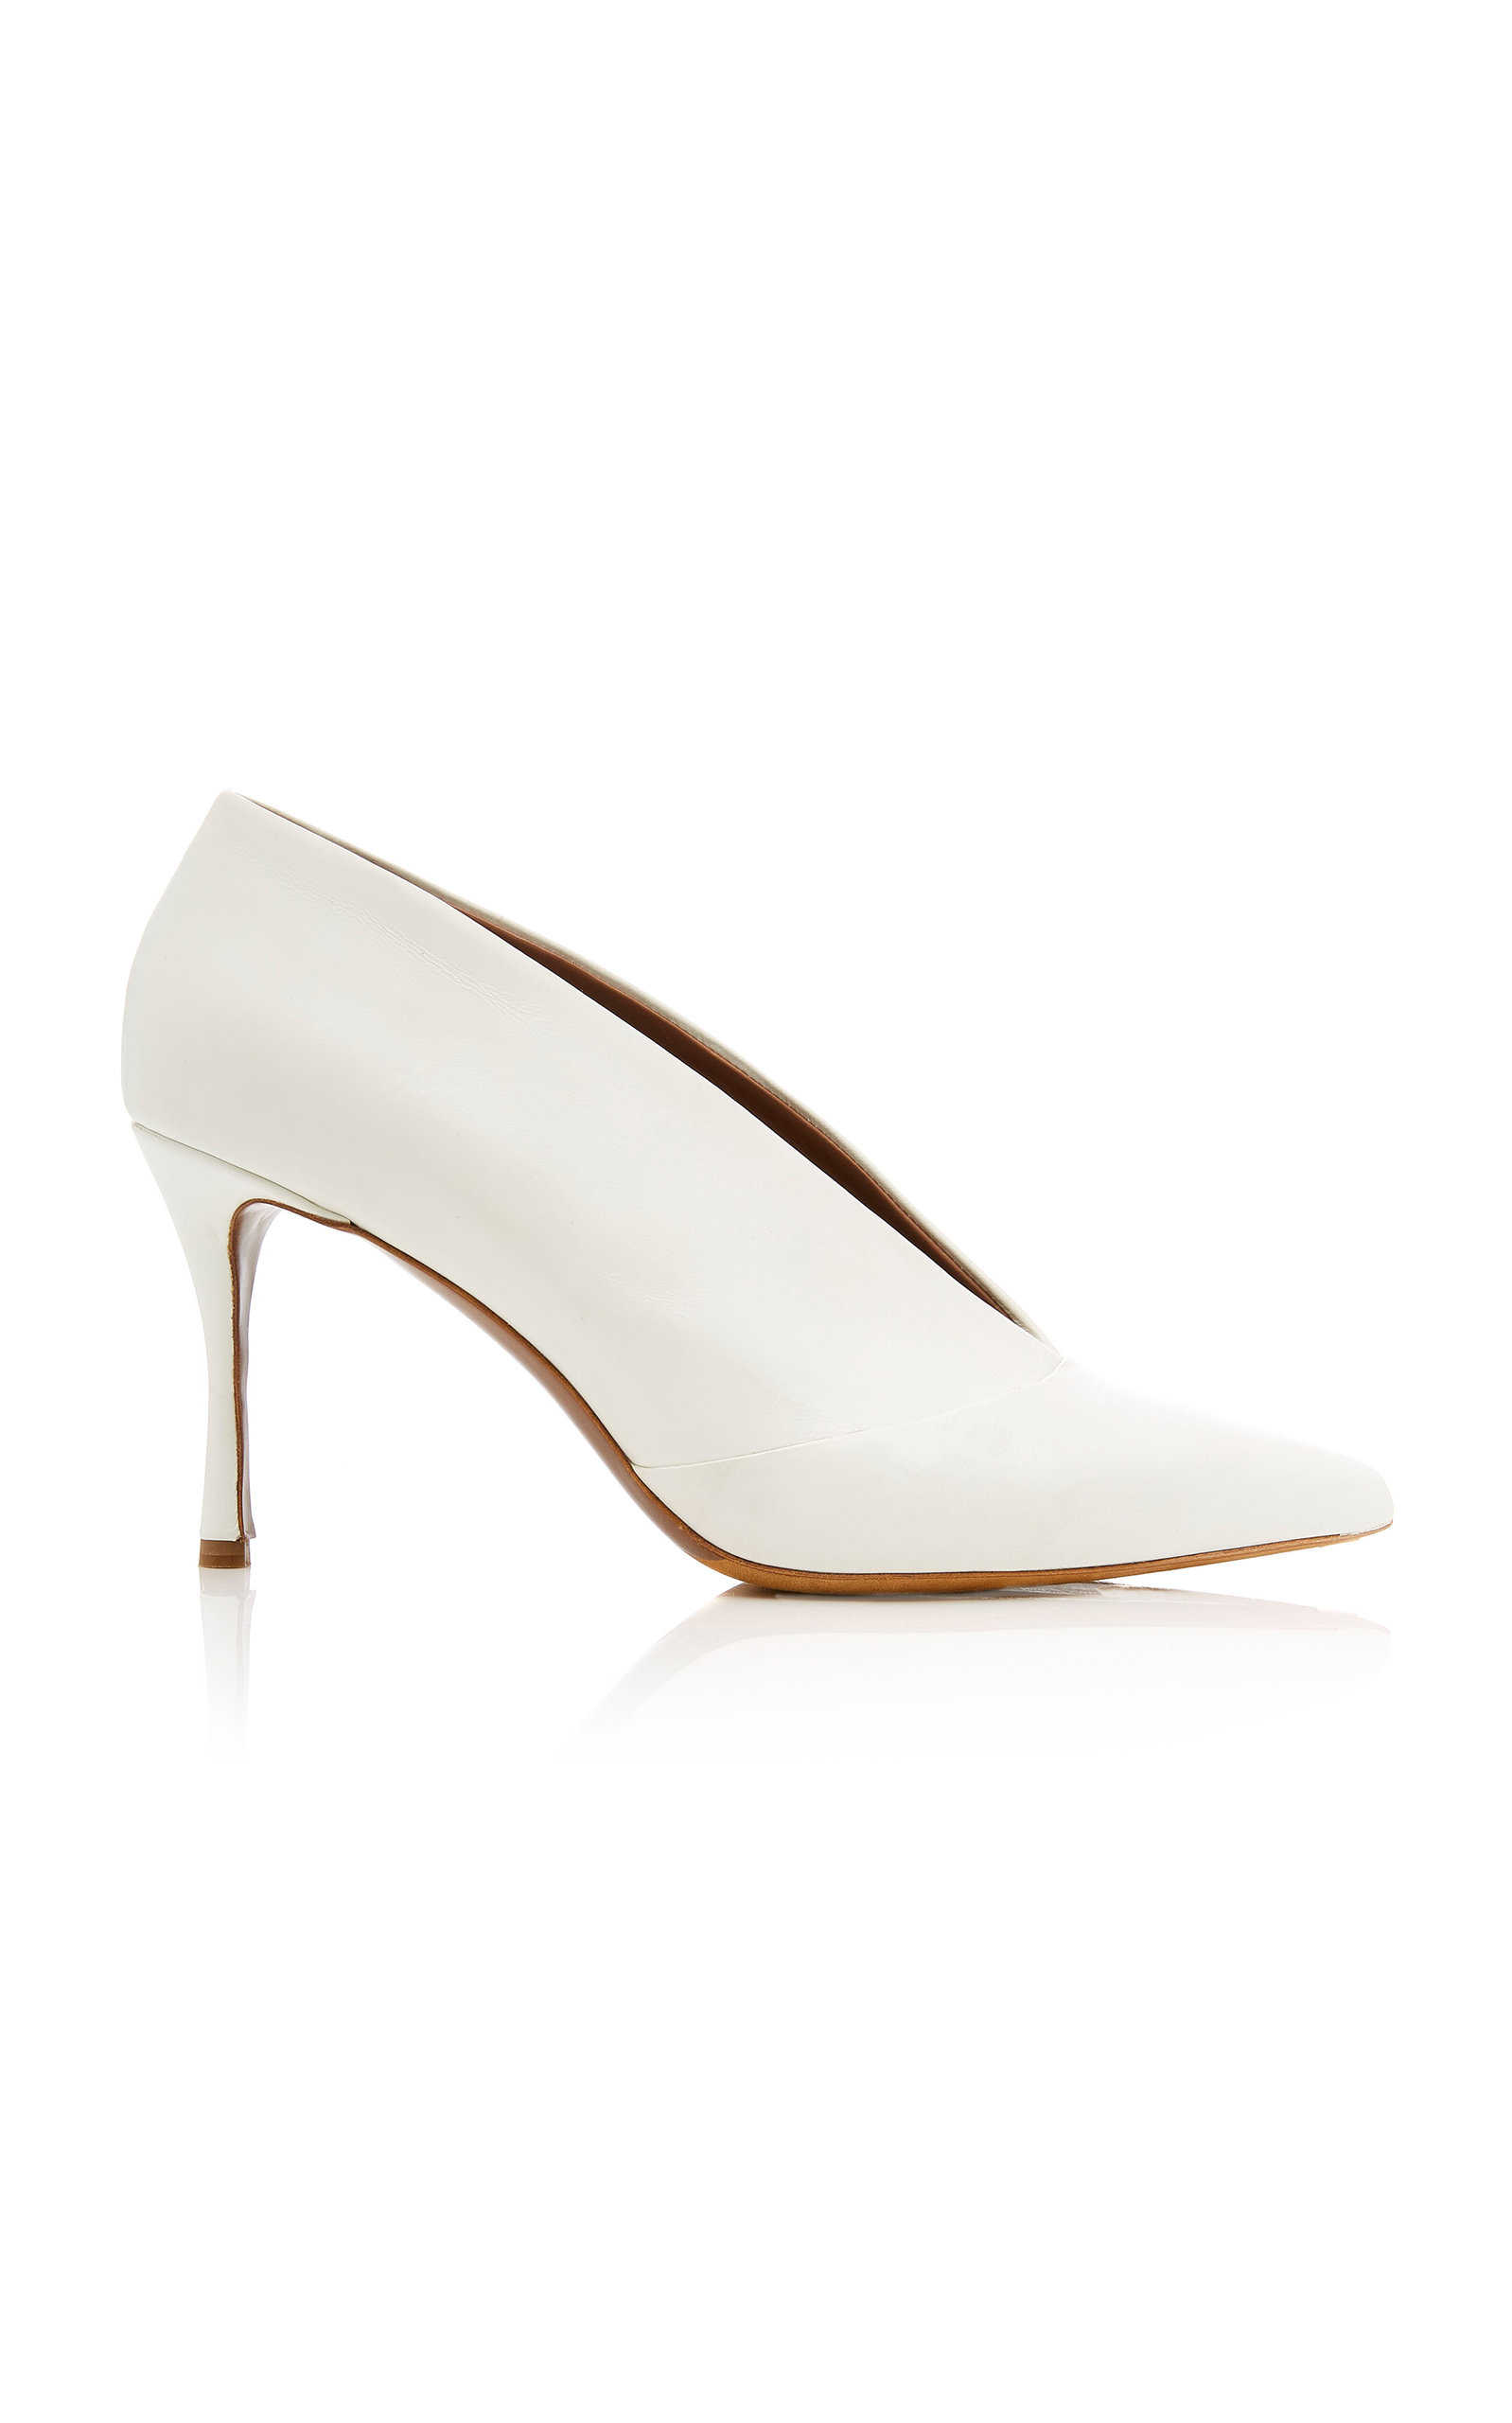 Women'S Strike Leather Pointed Toe Pumps in White